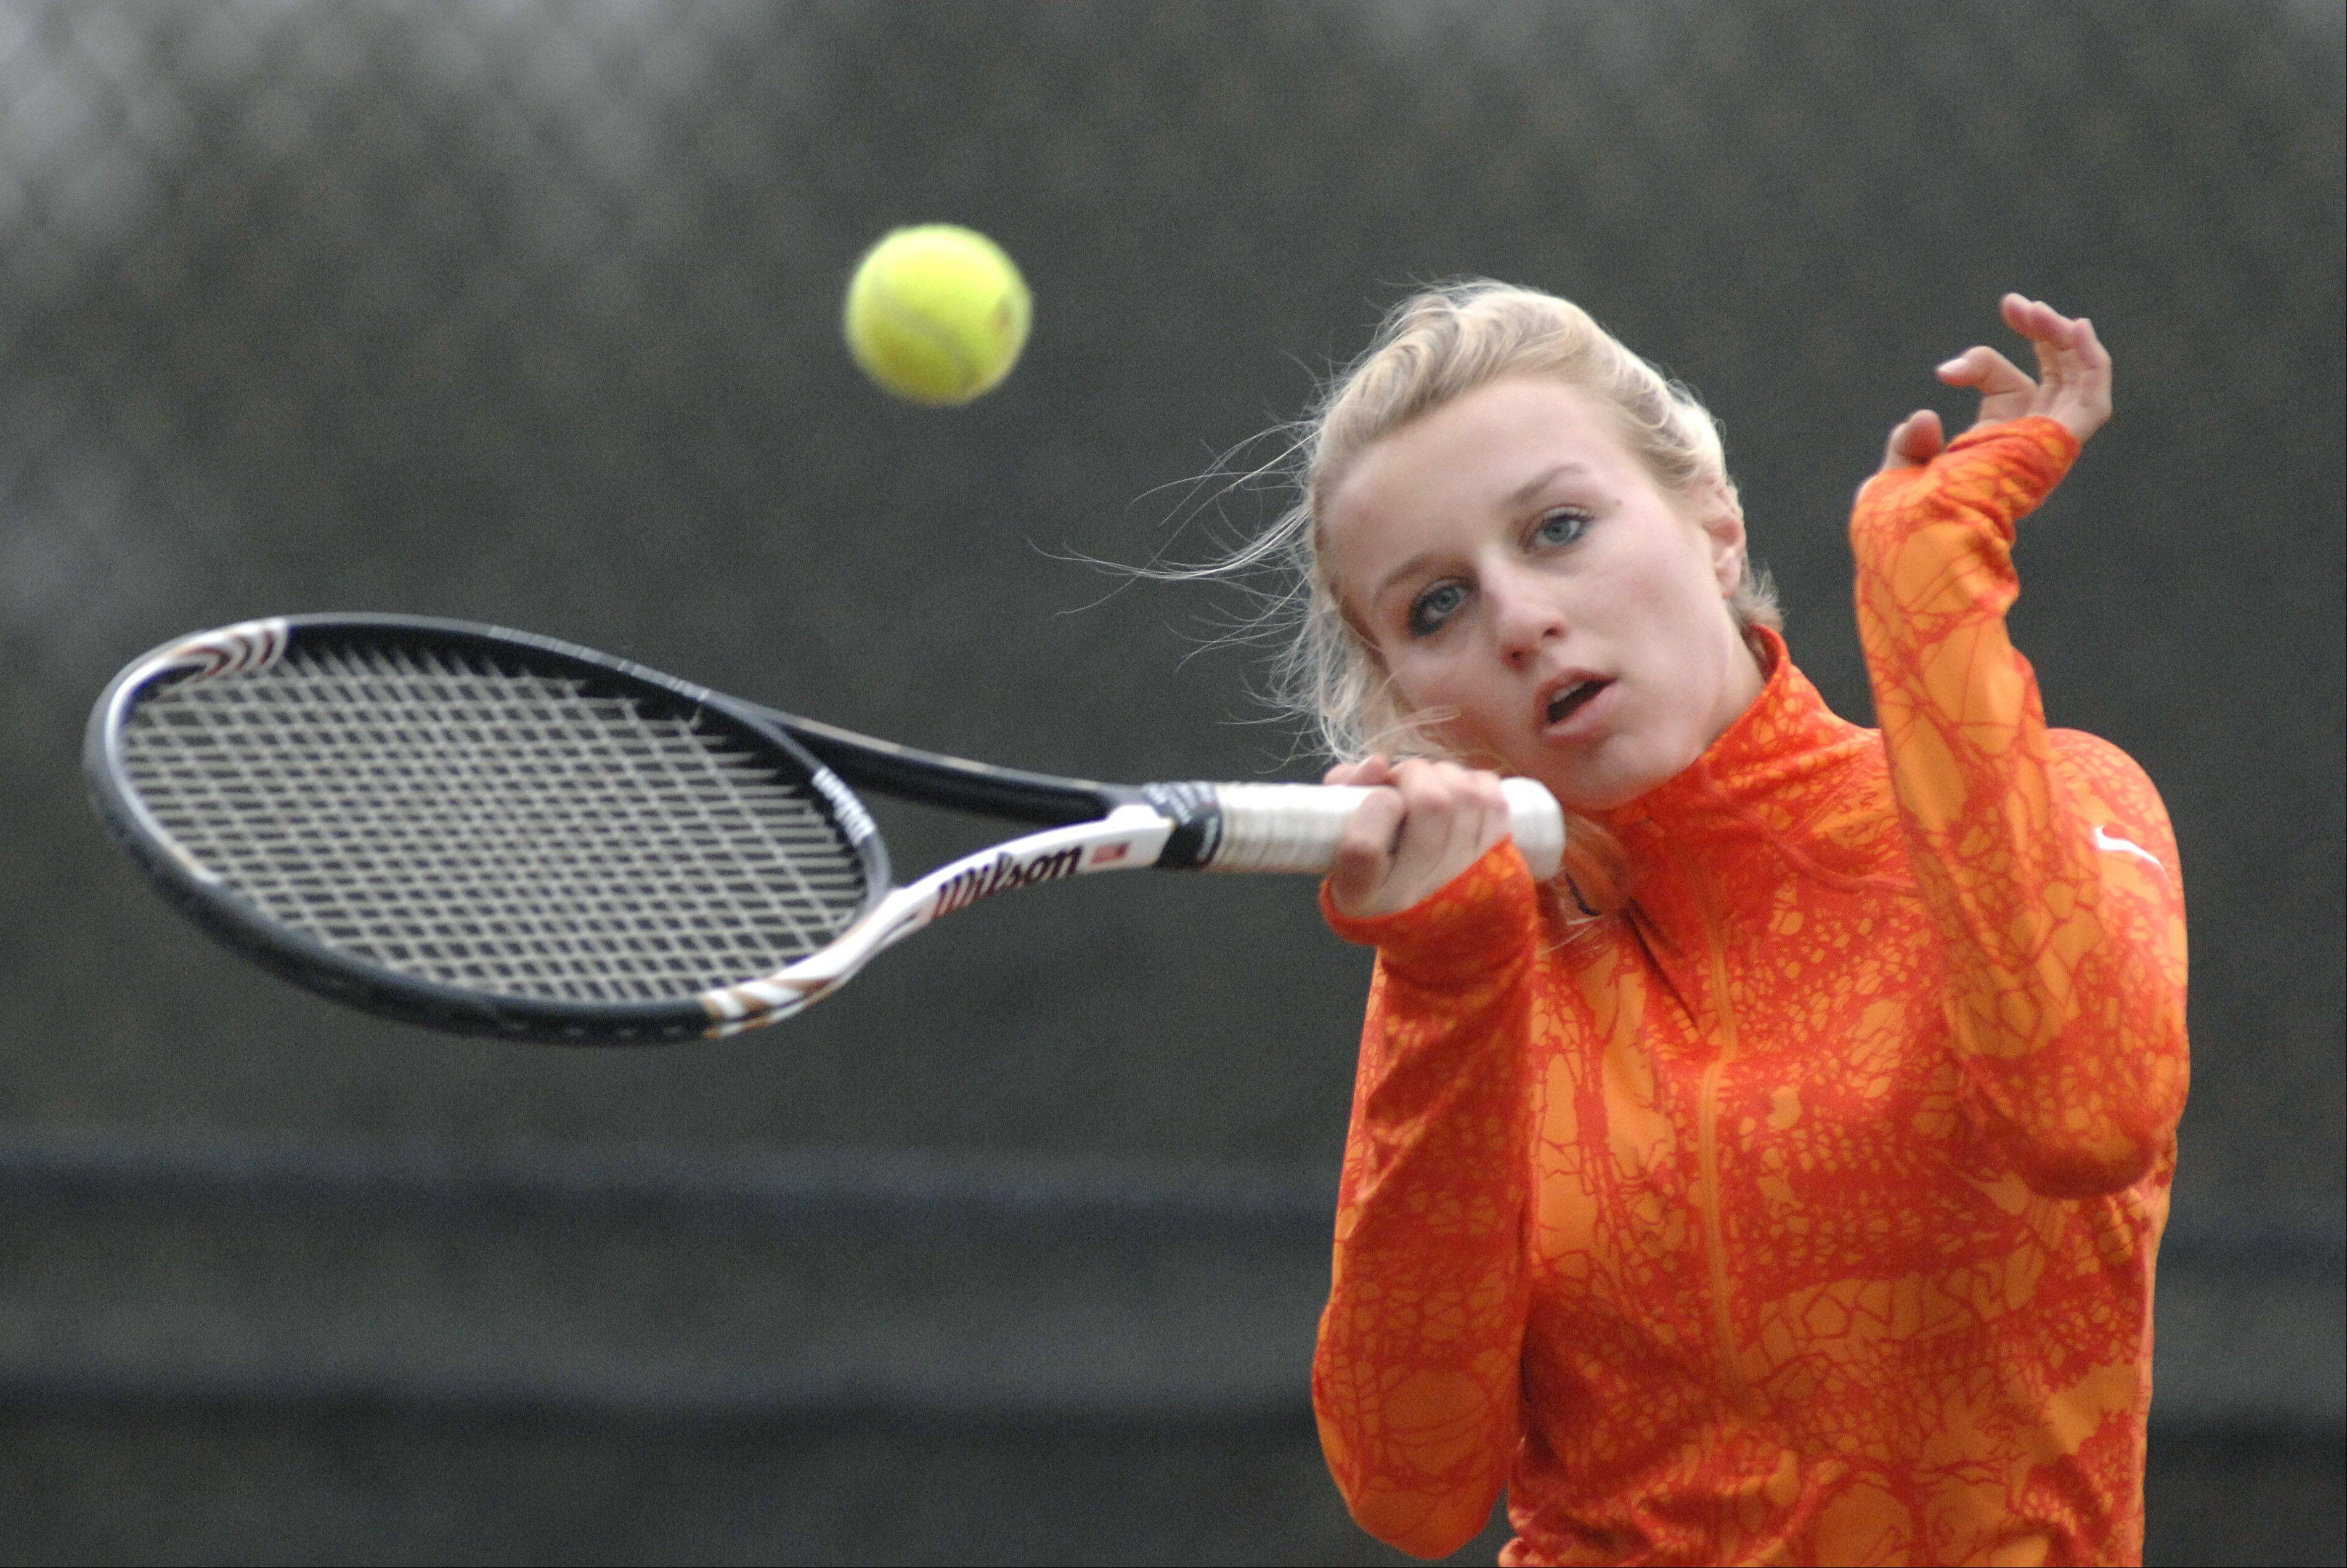 St. Charles East's Sarah Church competes in a singles semi-finals match during Saturday's tennis sectional in St. Charles.